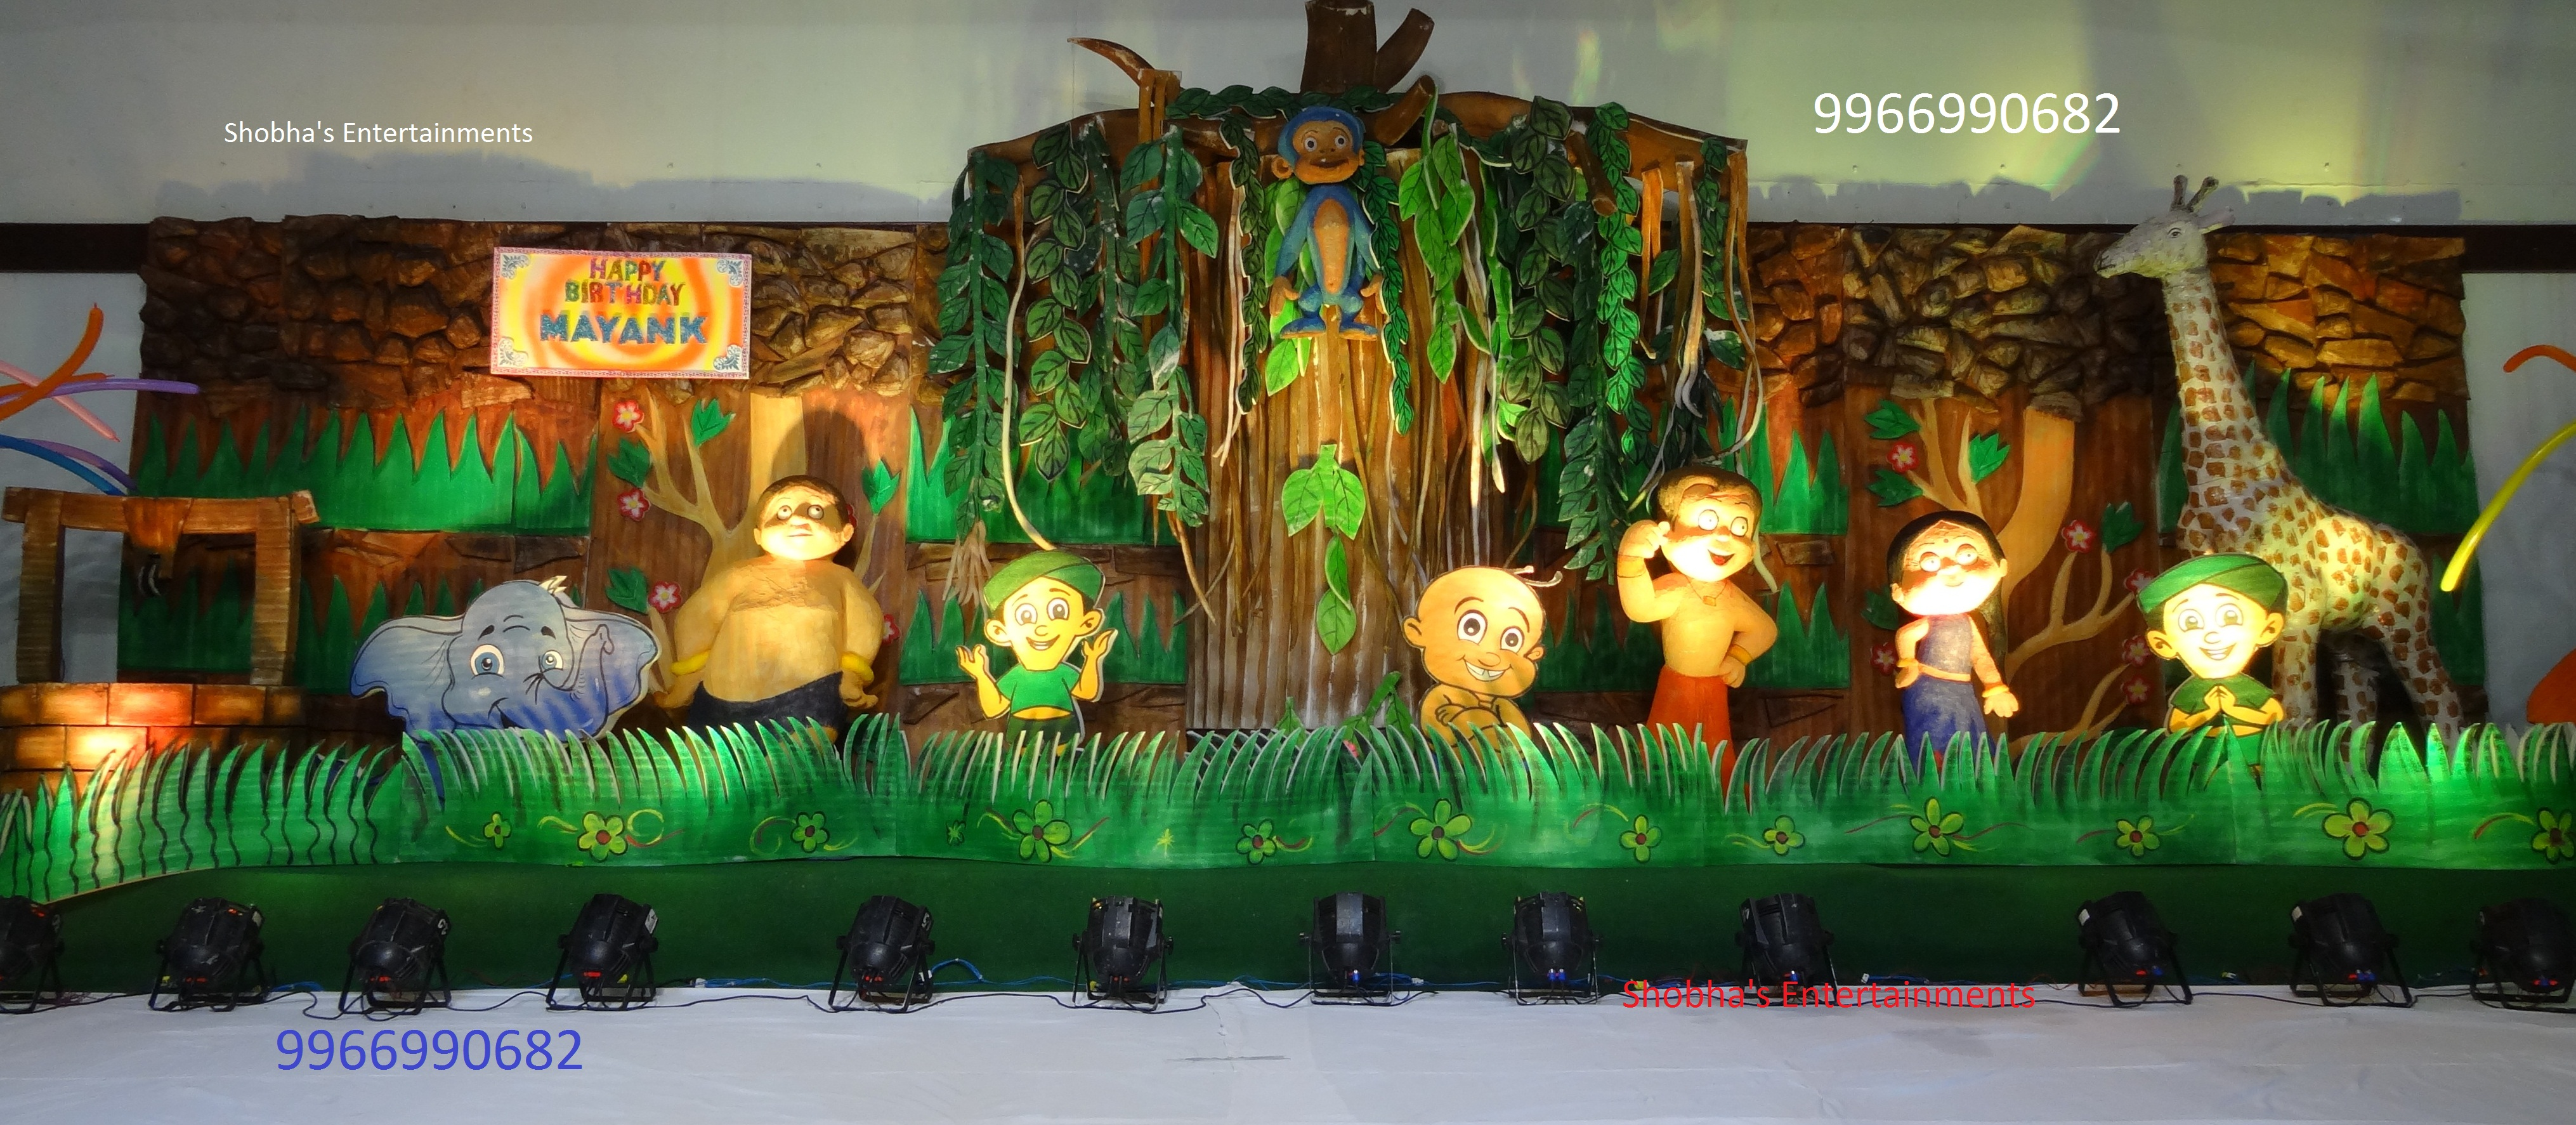 Chotabheem shobha 39 s entertainments for Annual function stage decoration